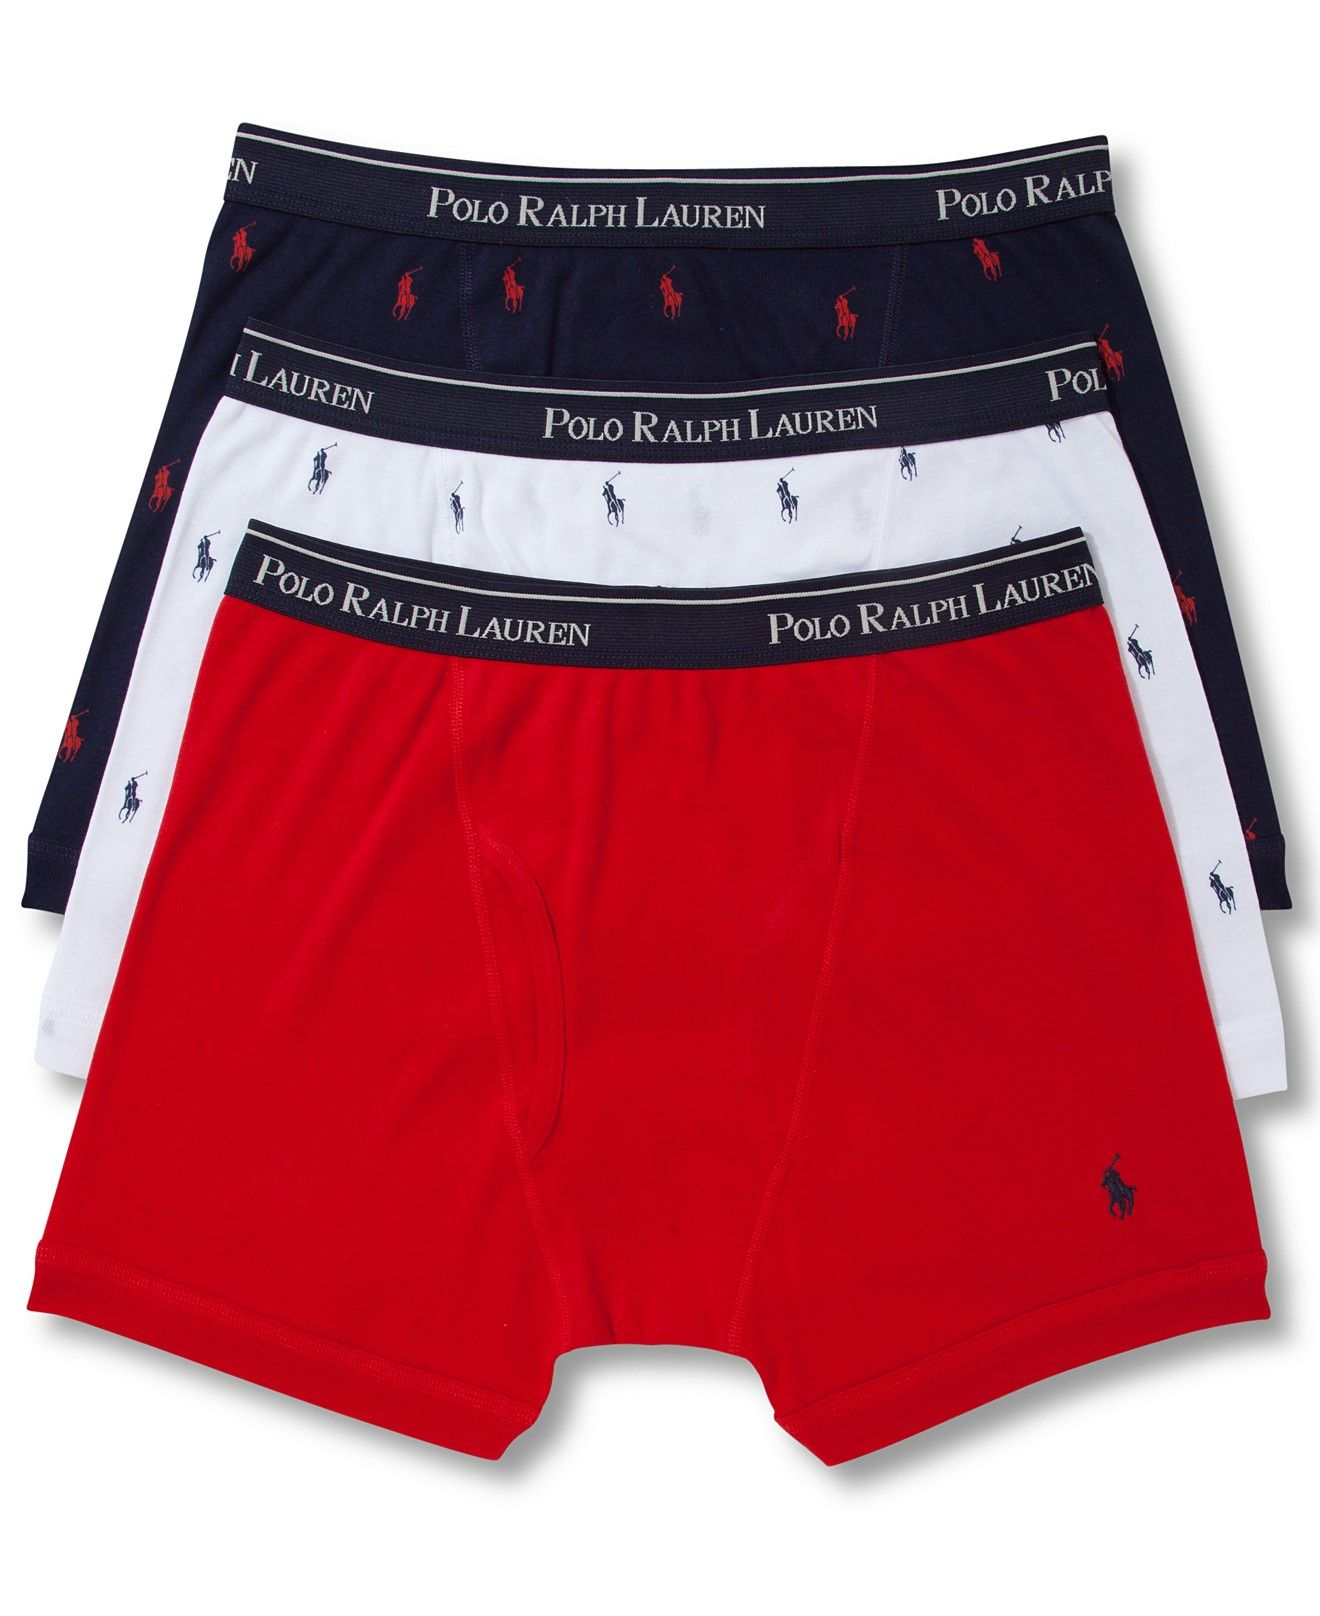 c1e866aae101 Polo Ralph Lauren Men's Underwear, Boxer Briefs 3 Pack - Underwear - Men -  Macy's